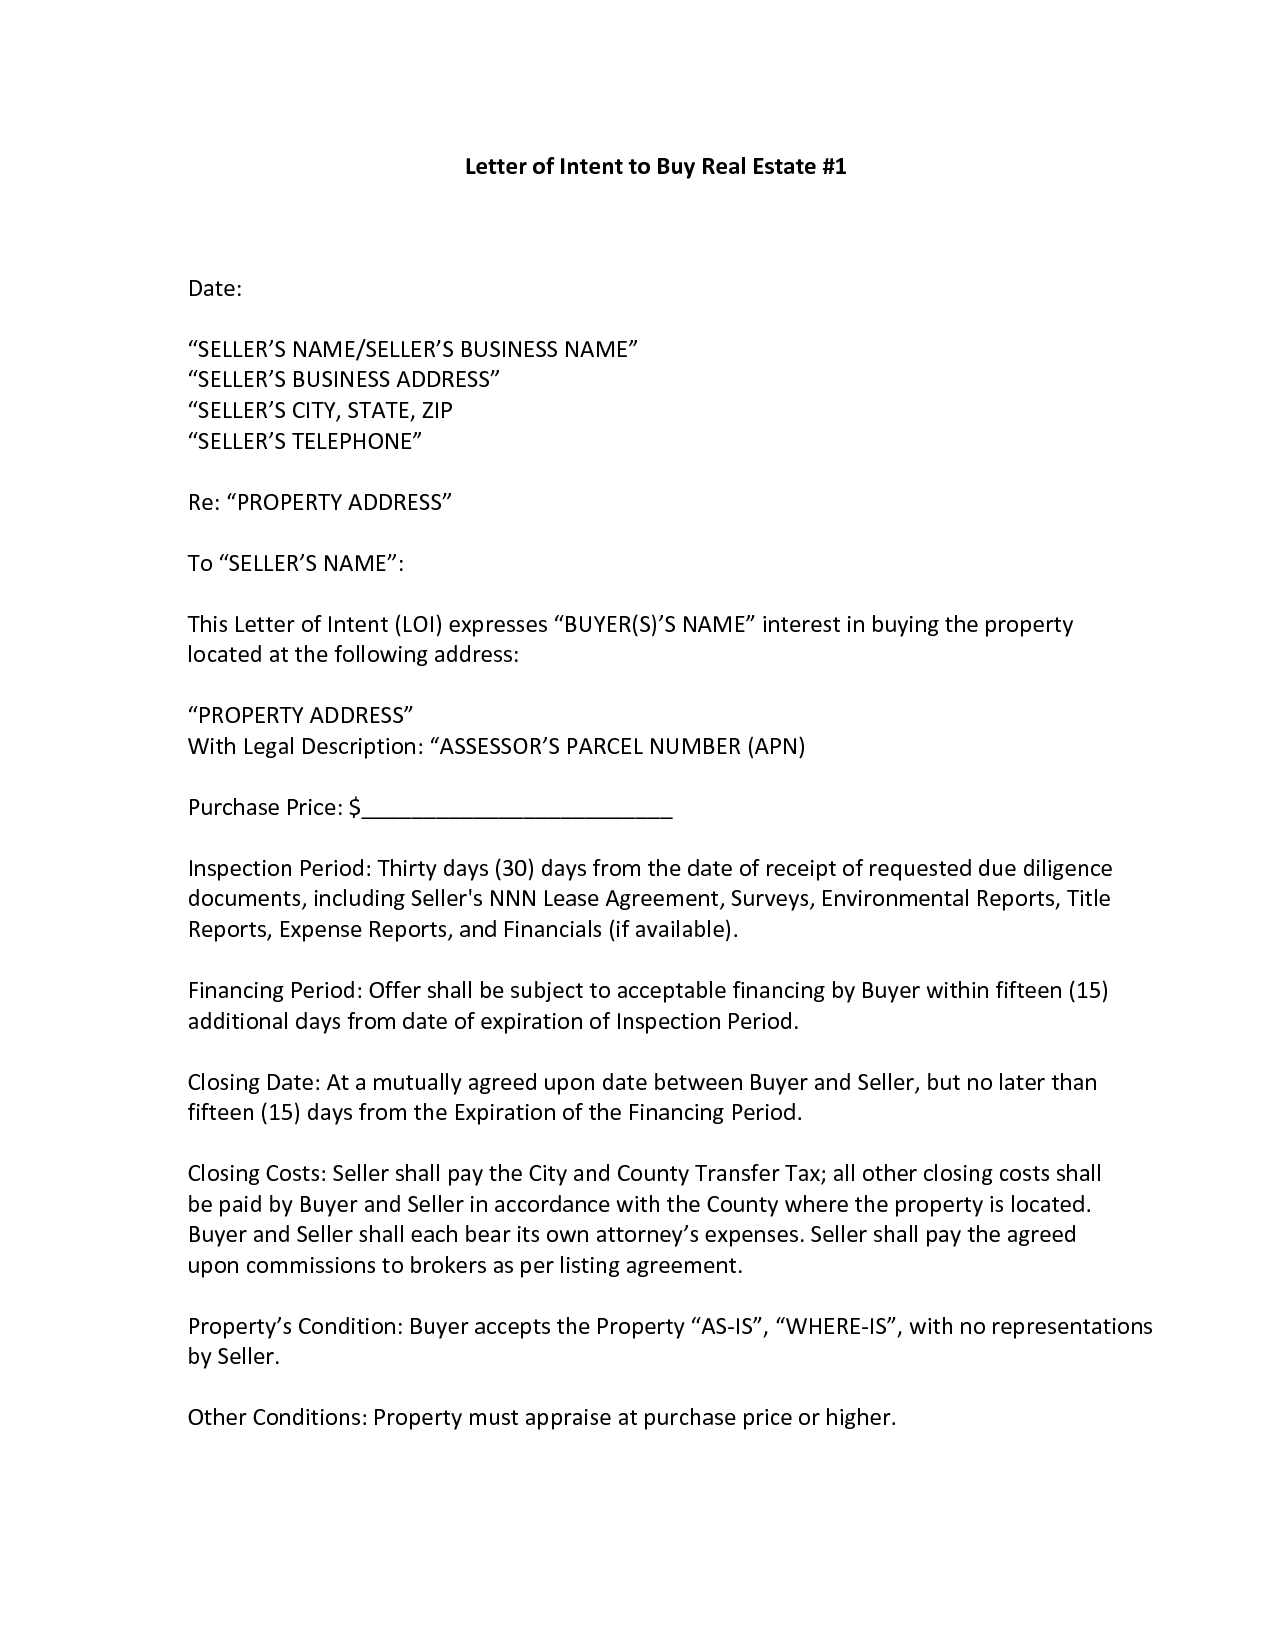 Letter Of Intent to Sell A Business Template - Sample Letter Intent Purchase Real Estate New Property Fer